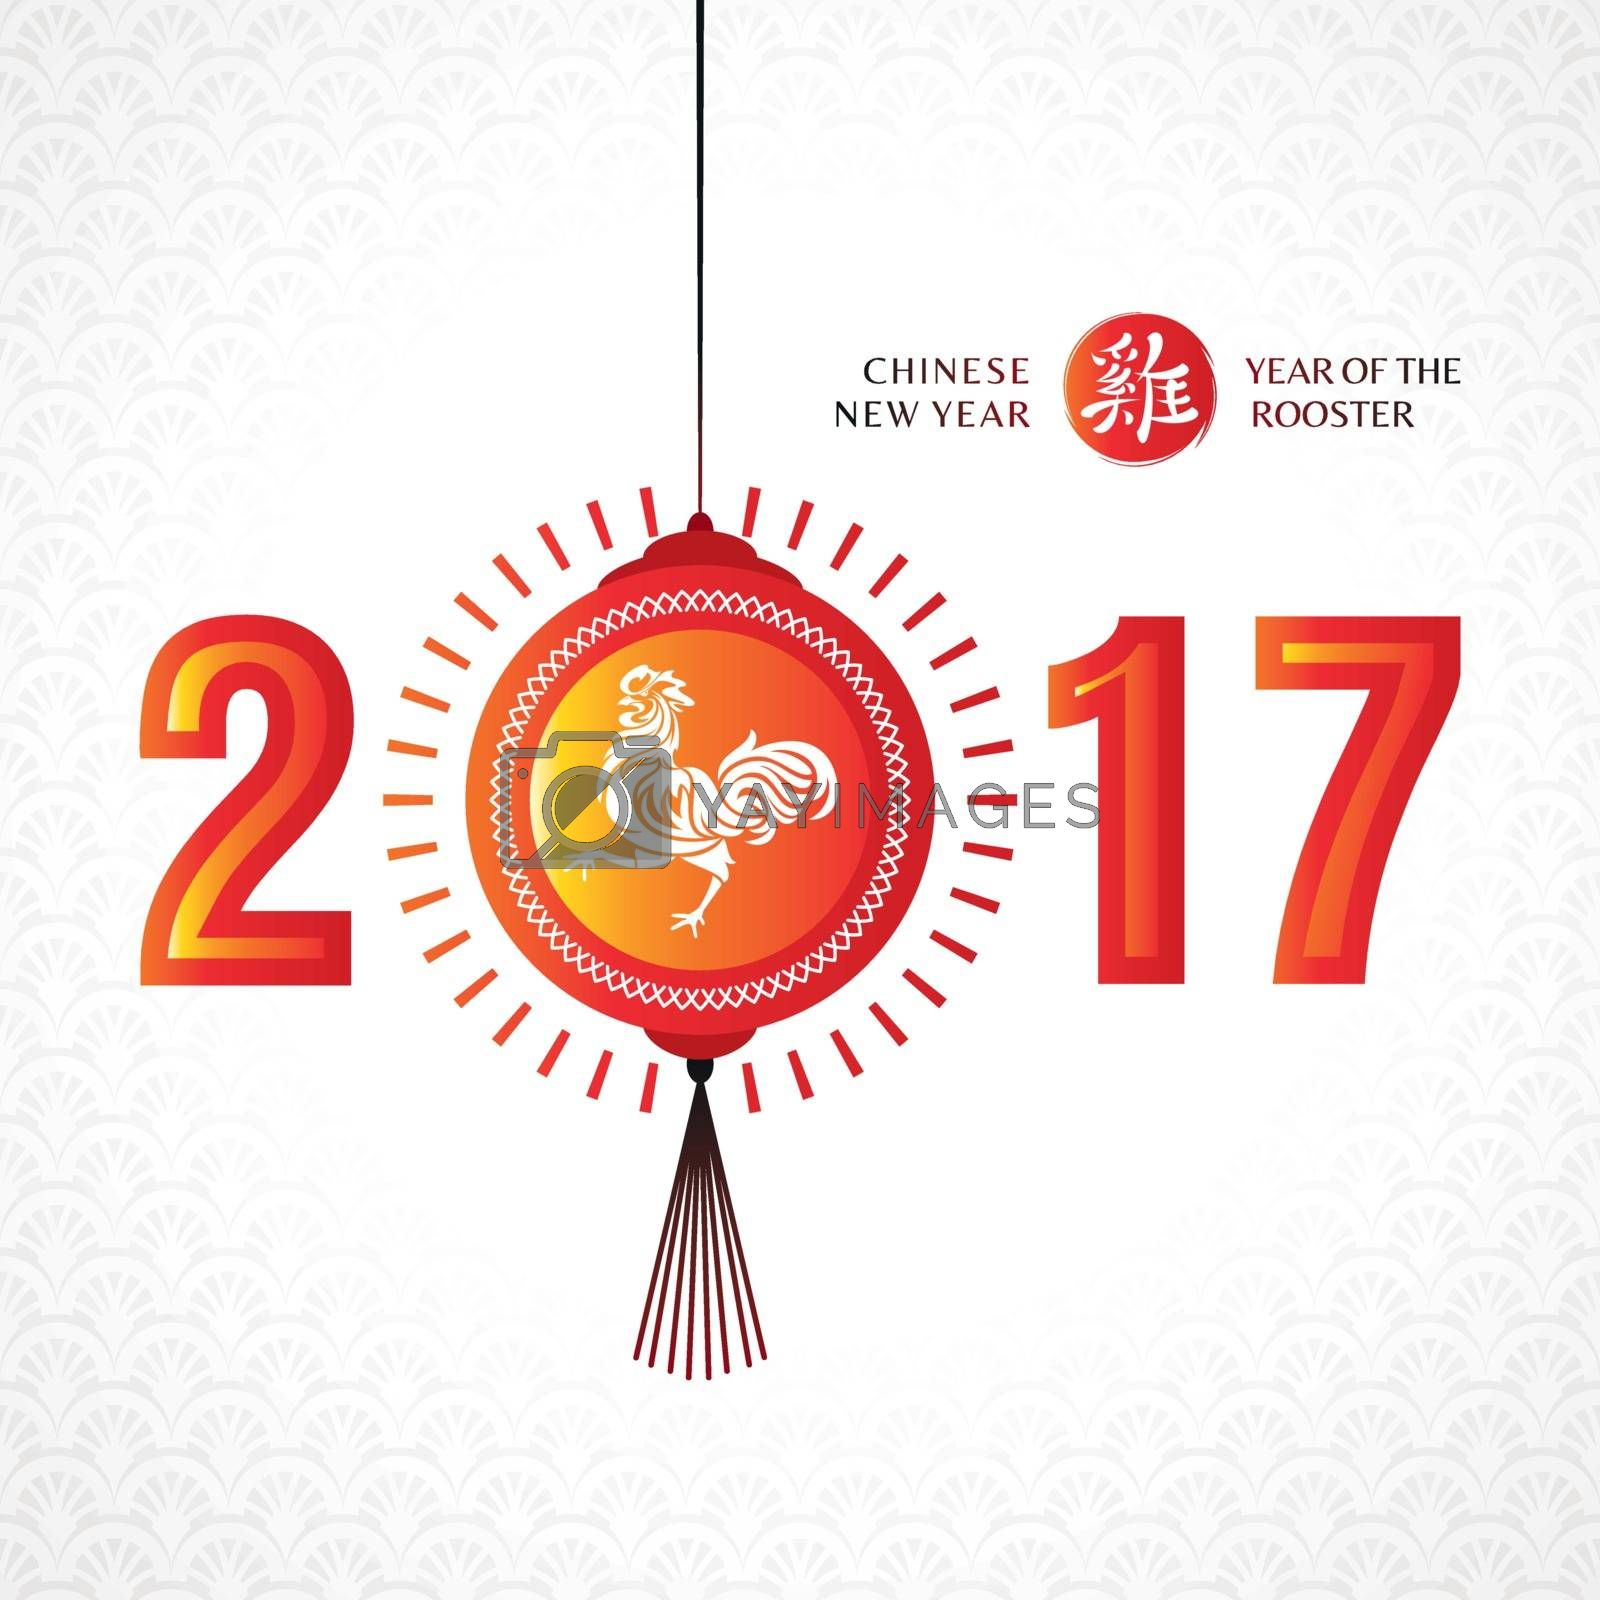 2017 Chinese new year greeting card. Vector illustration